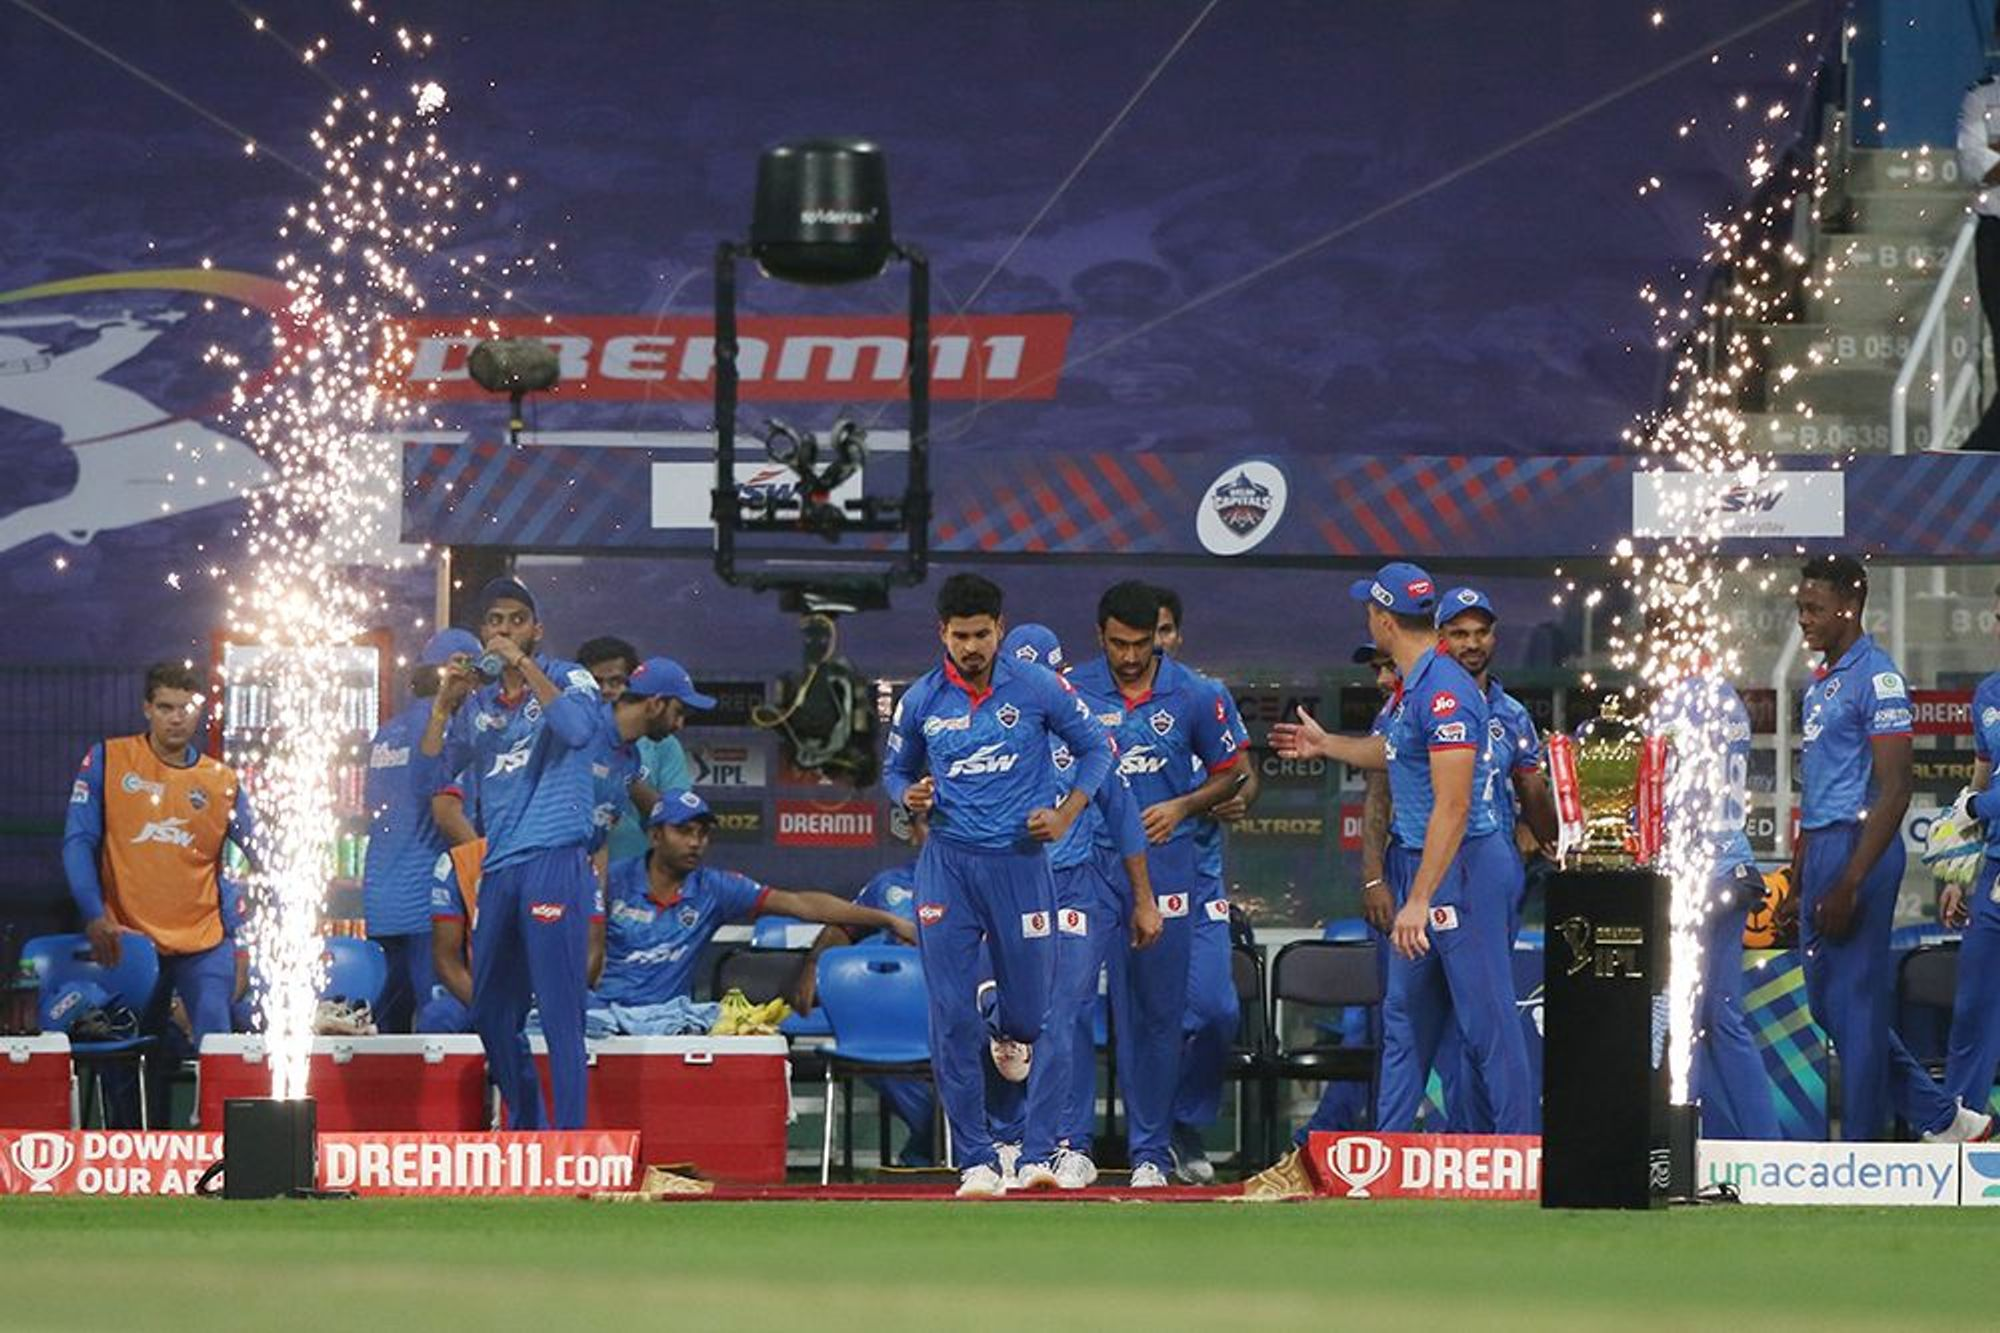 Aakash Chopra suggests that 5 players to be retained by Delhi Capitals for the upcoming edition of IPL2021